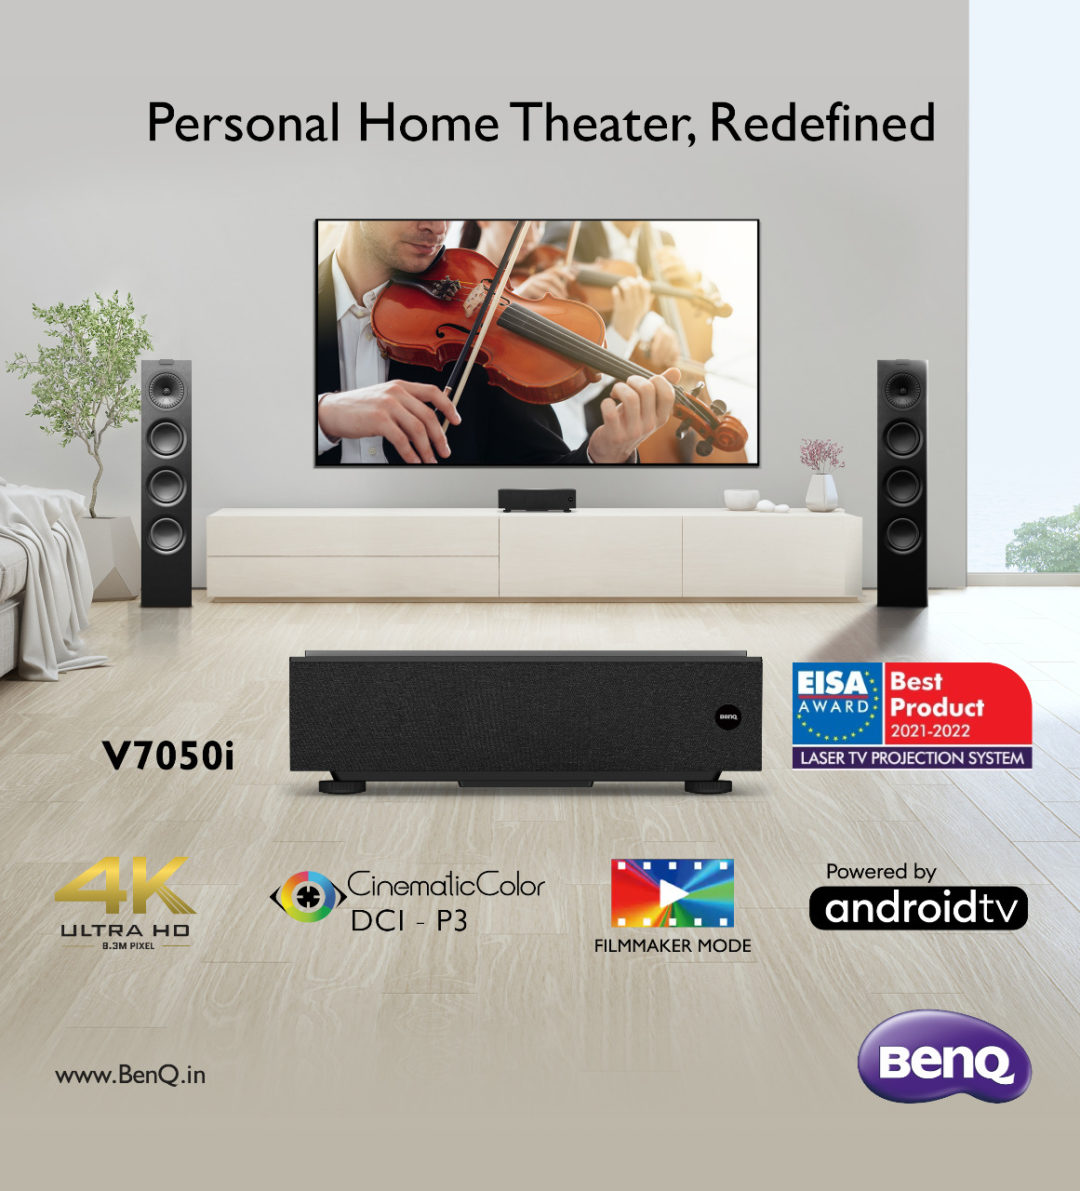 BenQ launches their V7050i 4K Laser TV Projector in India